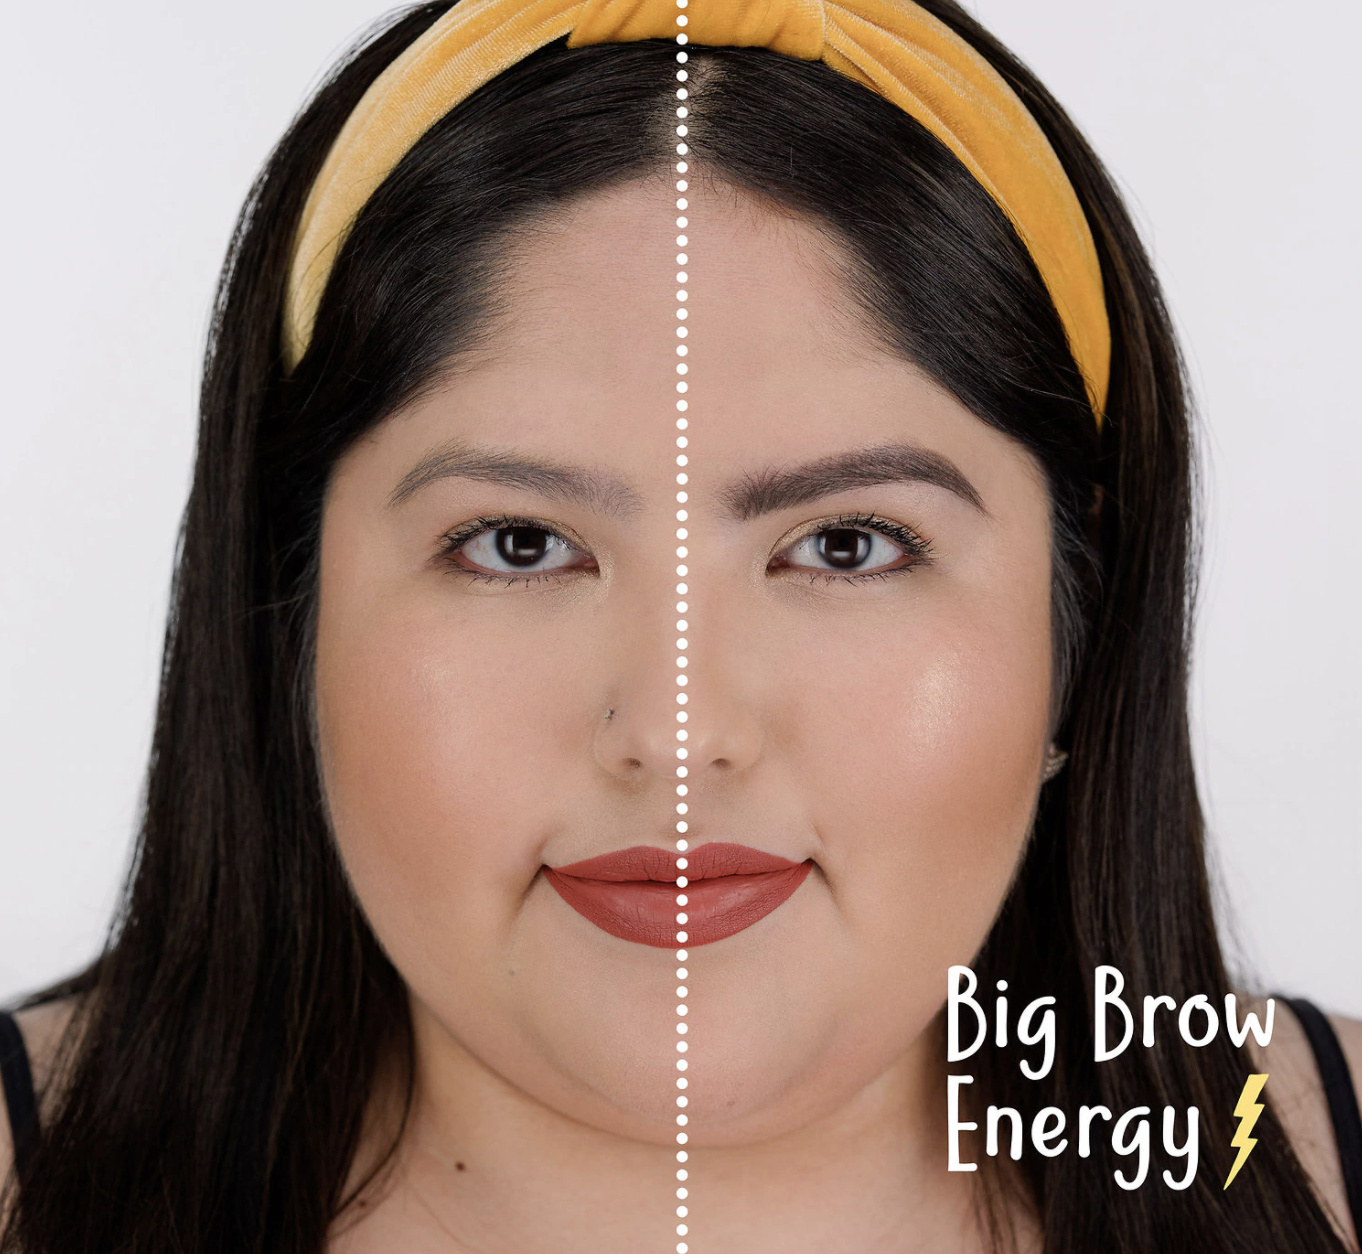 Model showing a before-and-after of her eyebrows looking much more full, dark, and precise